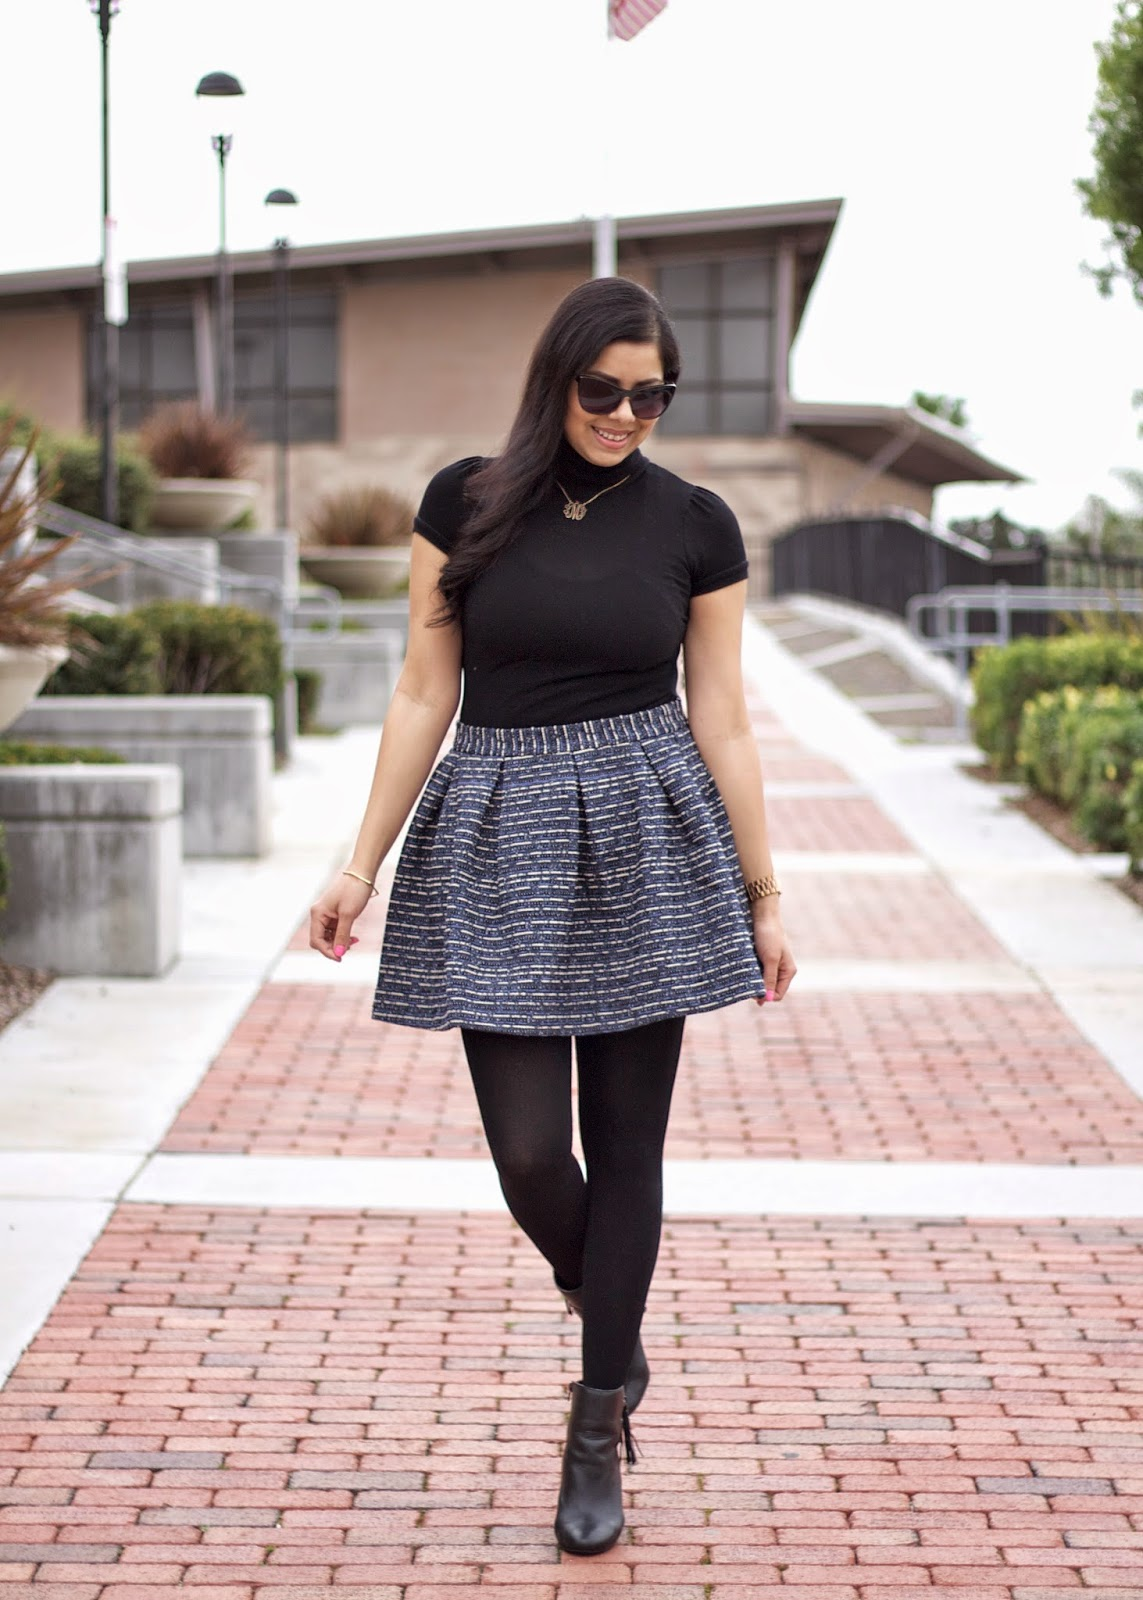 flared skirt, saylor clothing flared skirt, blue nave skater skirt, navy blue tweed skirt, tweed skater skirt, how to wear a skater skirt